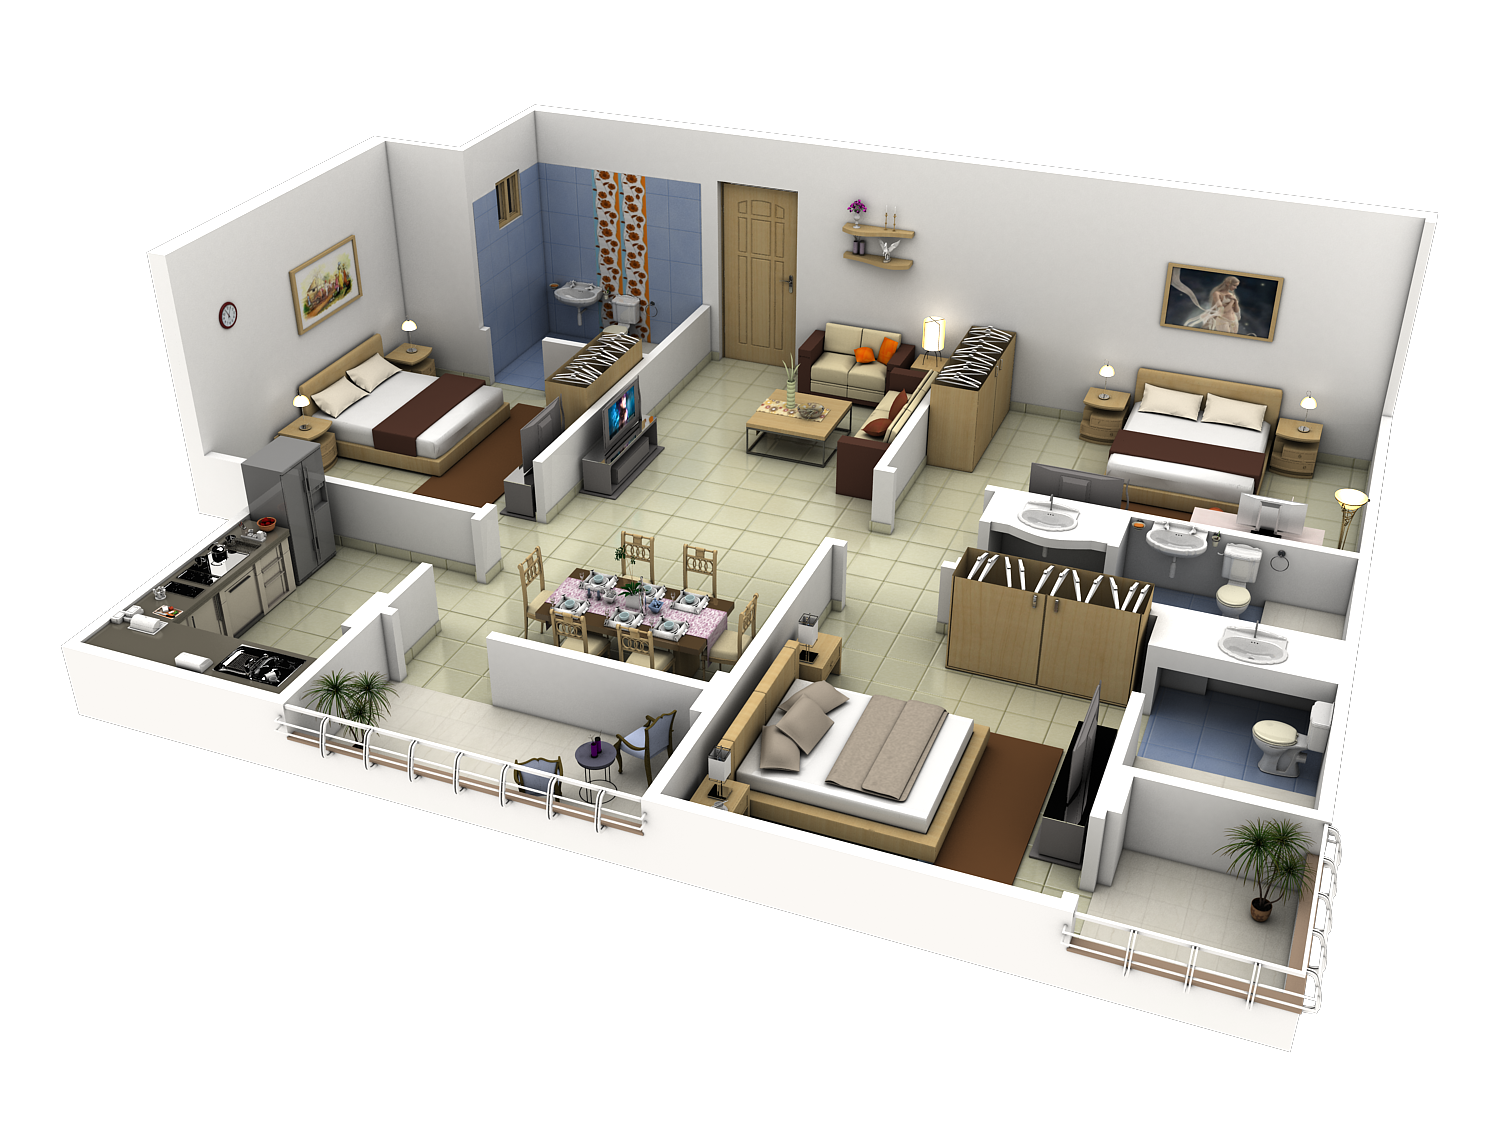 Tech n gen july 2011 renders pinterest tech house for Home plan 3d